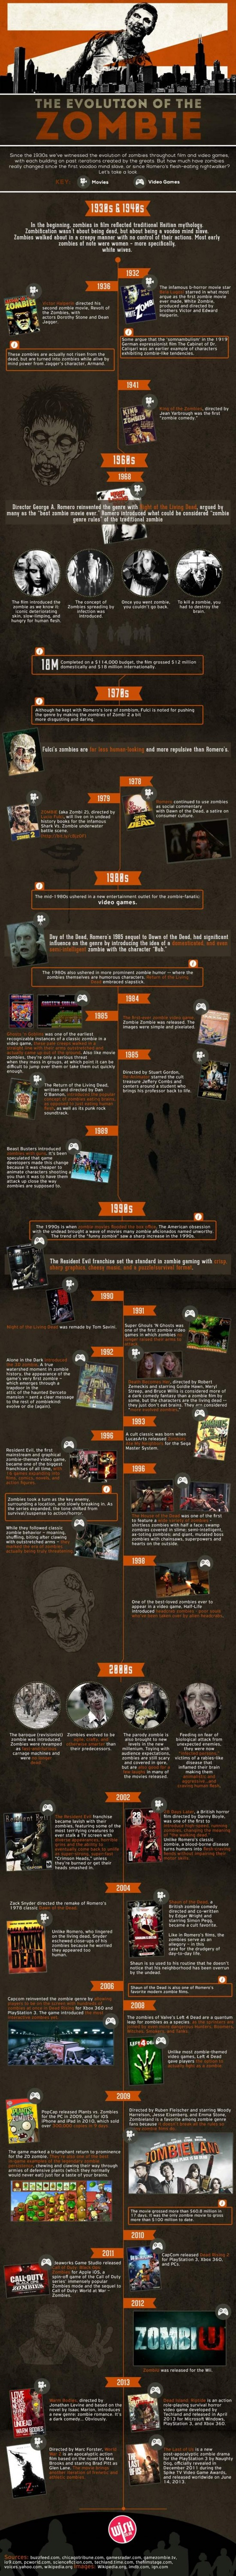 Evolution of Zombies Infographic